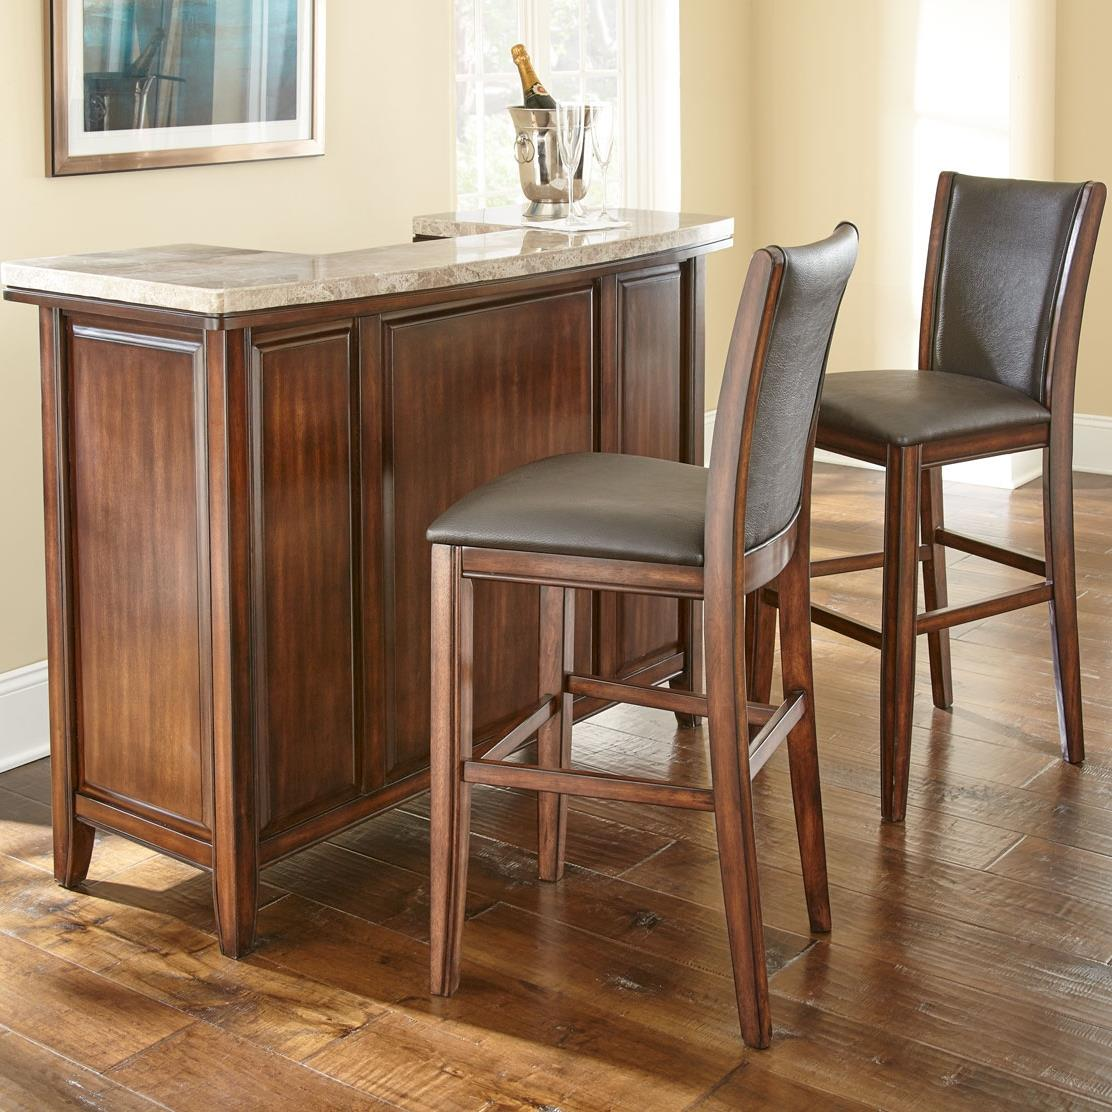 Beau Steve Silver Eileen Marble Top Bar And Stool Set   Item Number:  EE500SVT+EE500SVB